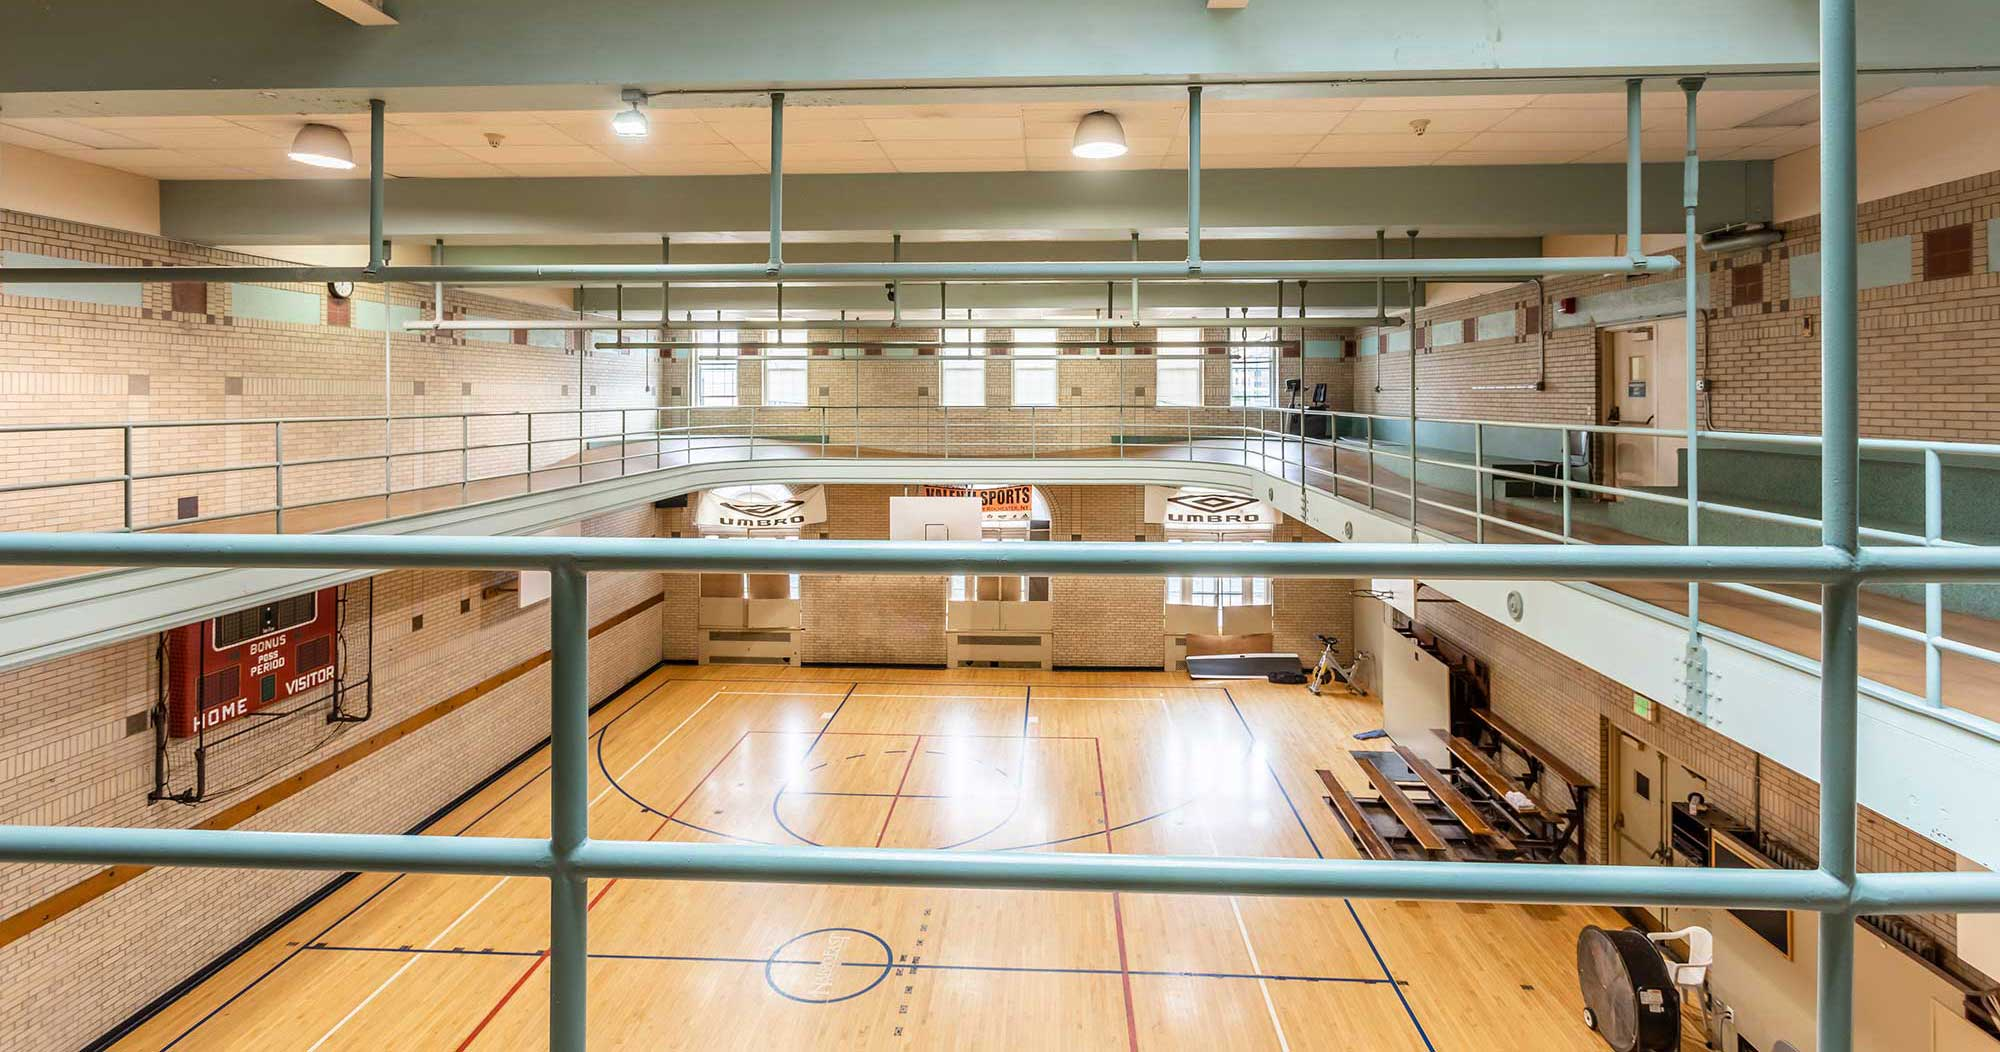 Gymnasium at Harro East Ballroom